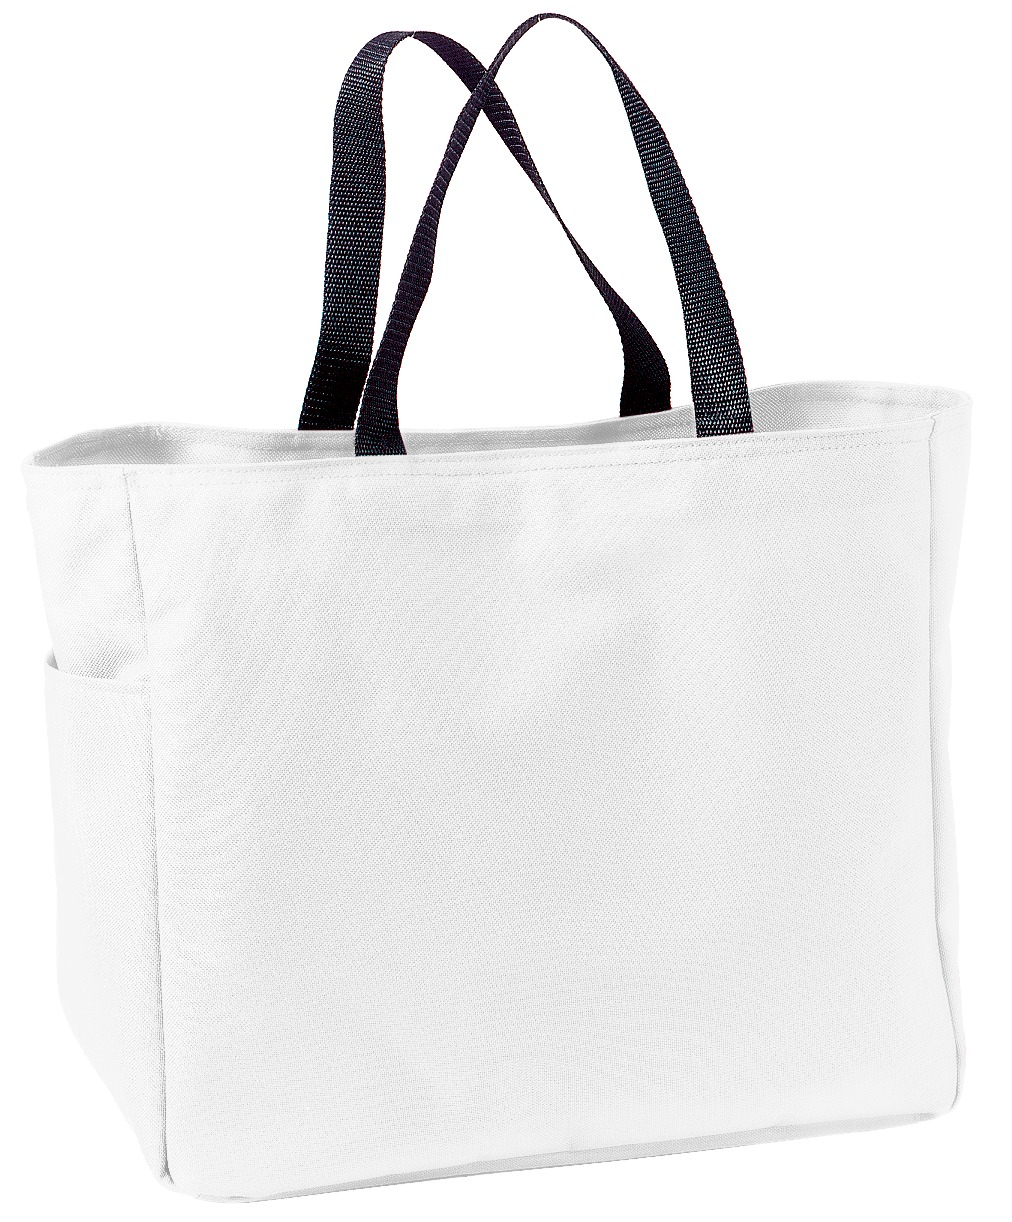 Port Authority ®  -  Essential Tote.  B0750 - White